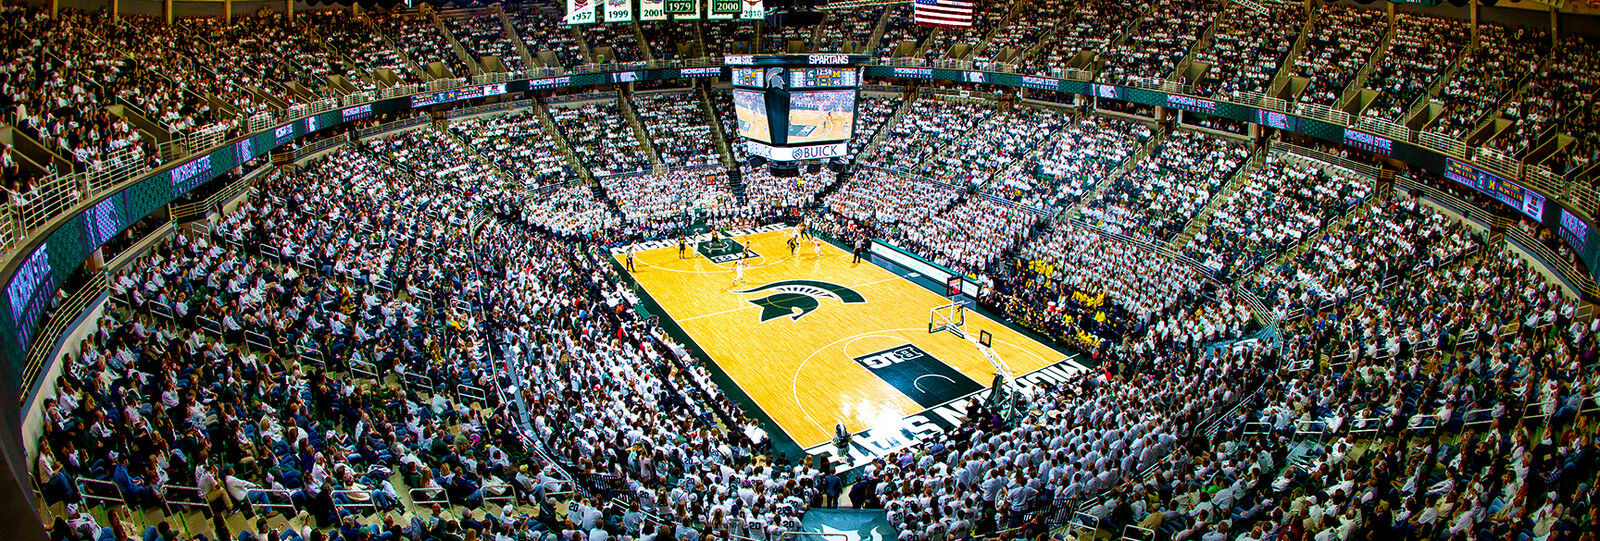 2018 Michigan State Spartans Basketball Season Tickets - Season Package (Includes Tickets for all Home Games)